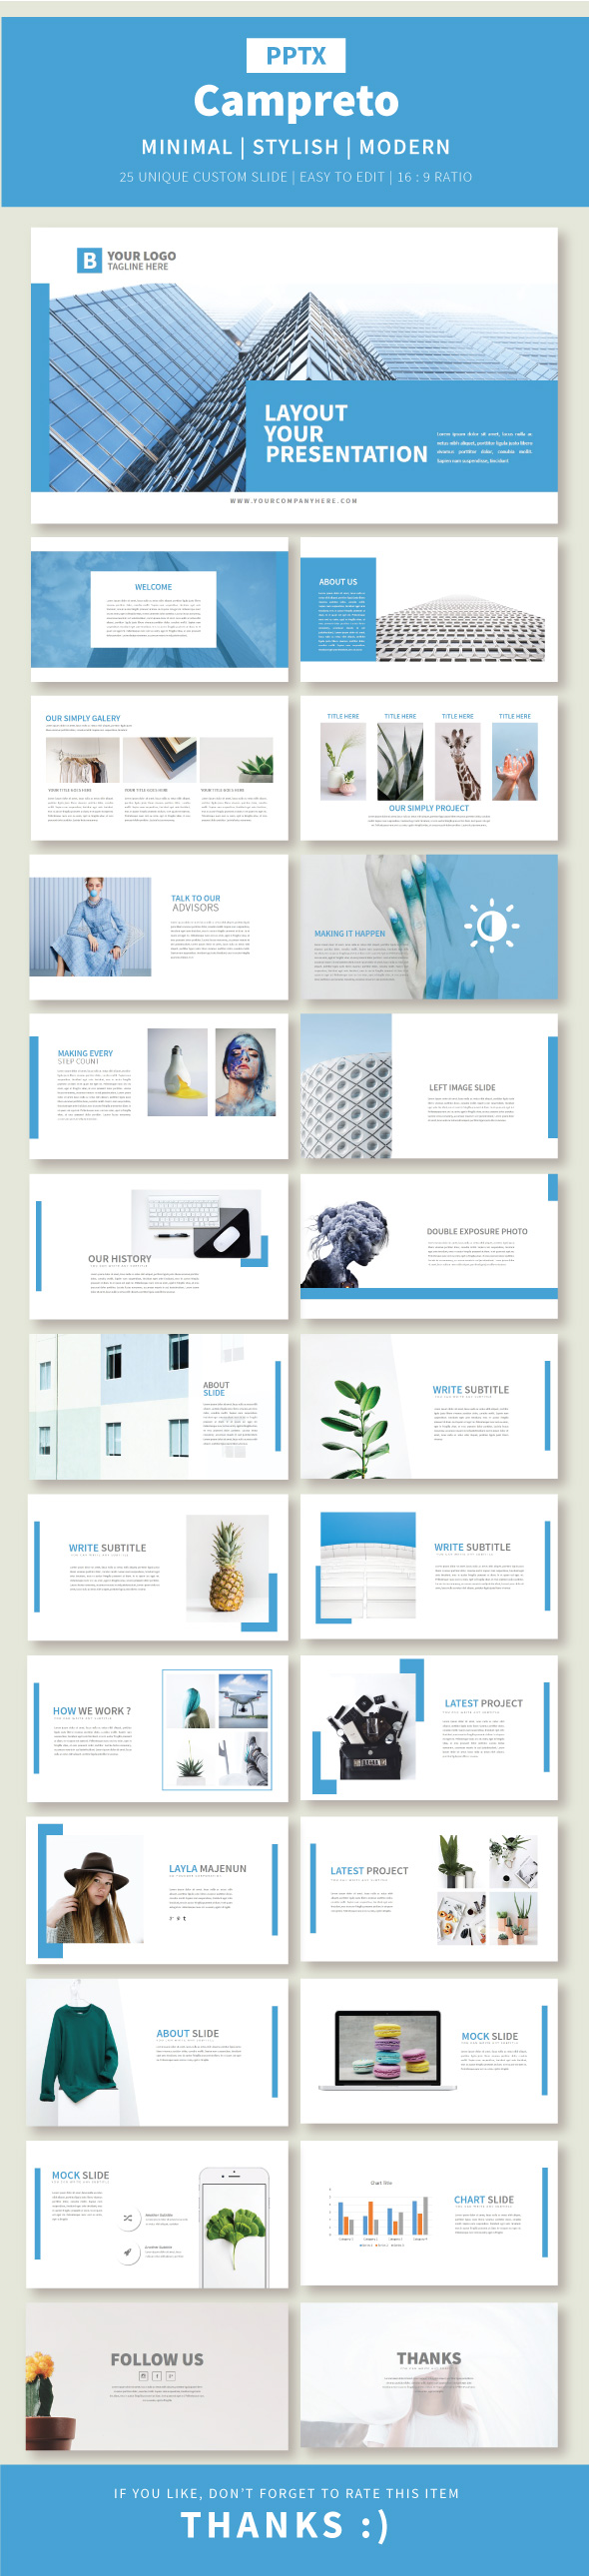 Campreto Presentation Template - Business PowerPoint Templates